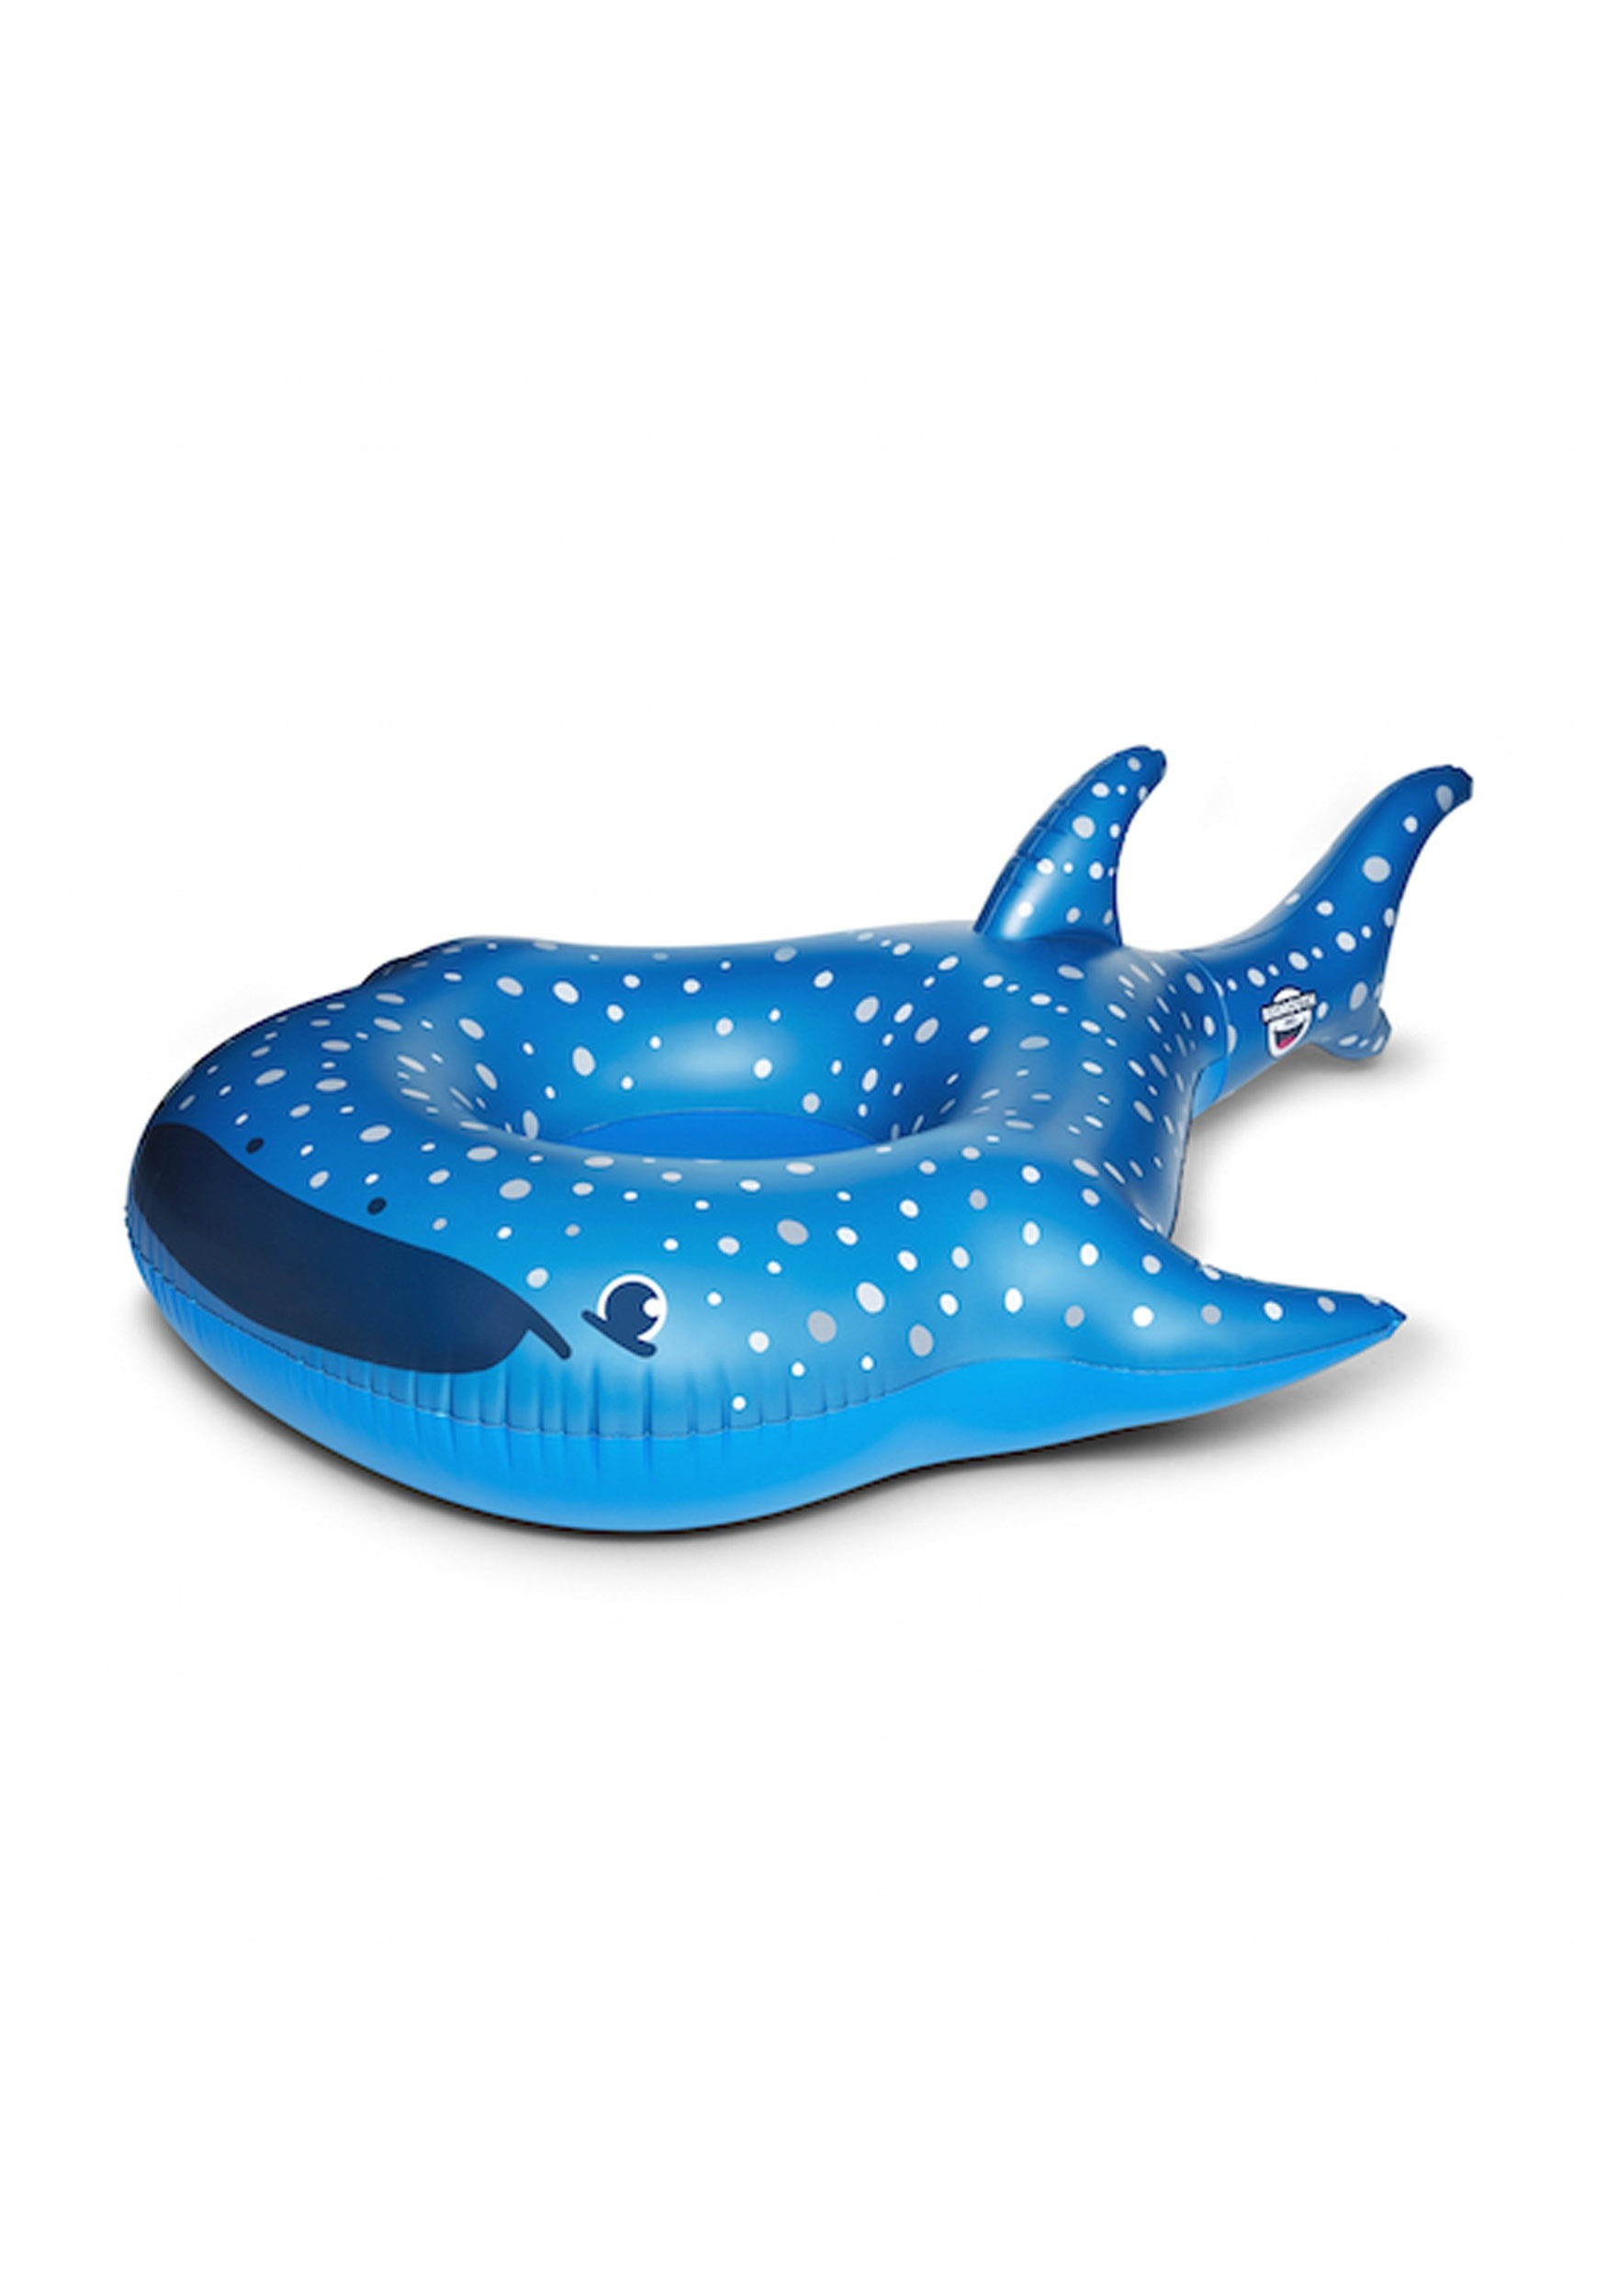 Whale Shark Toy Uk – Wow Blog